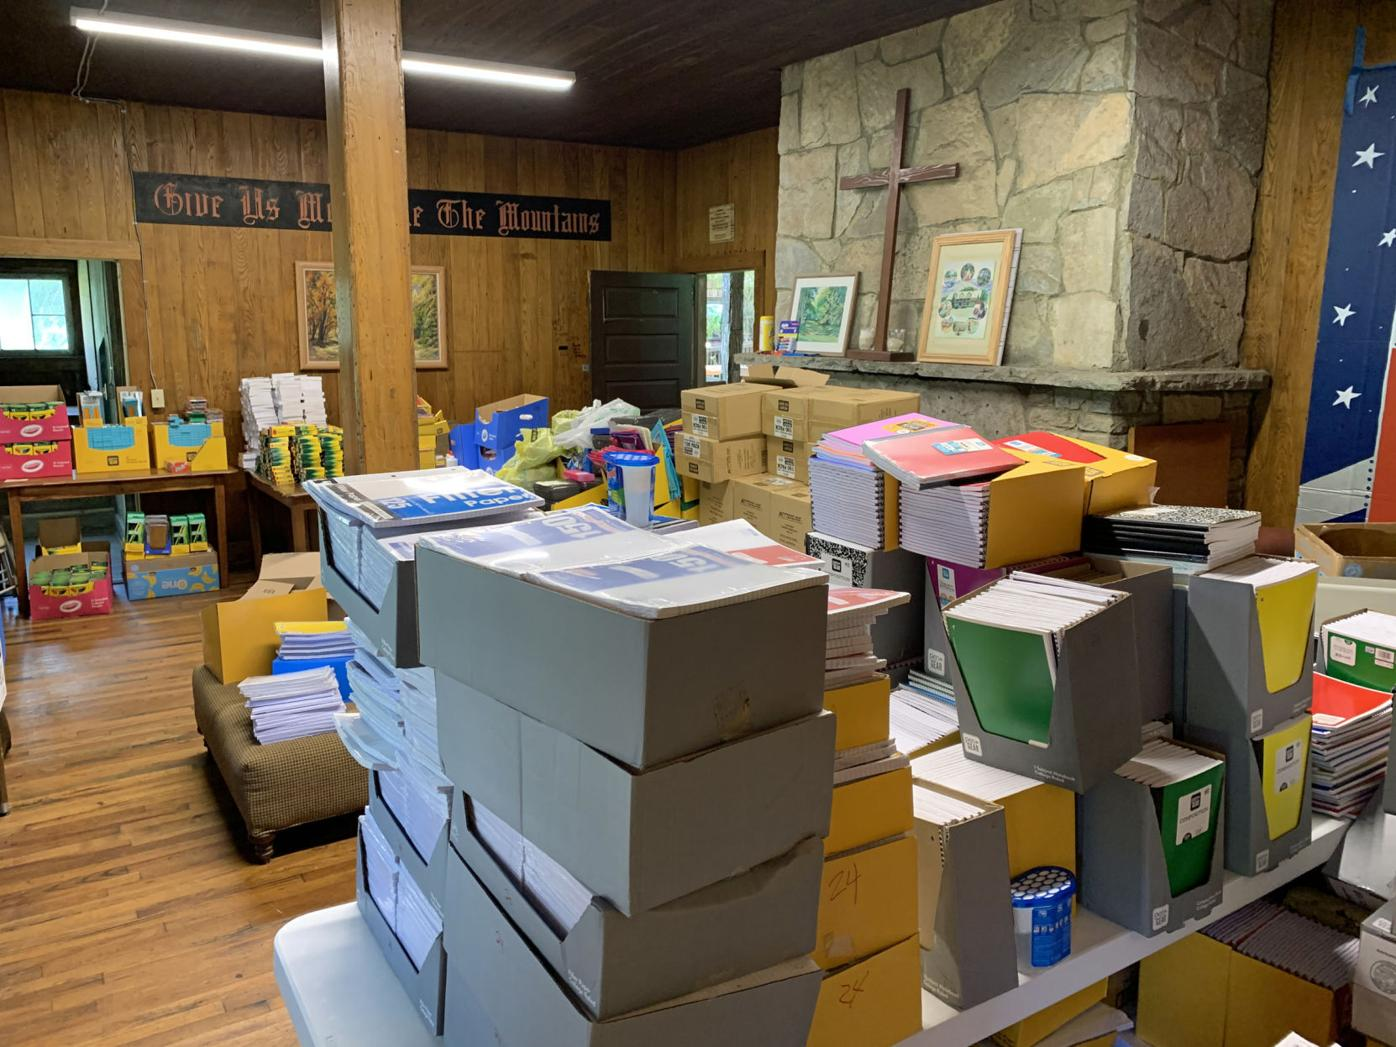 Lots of Paper and supplies